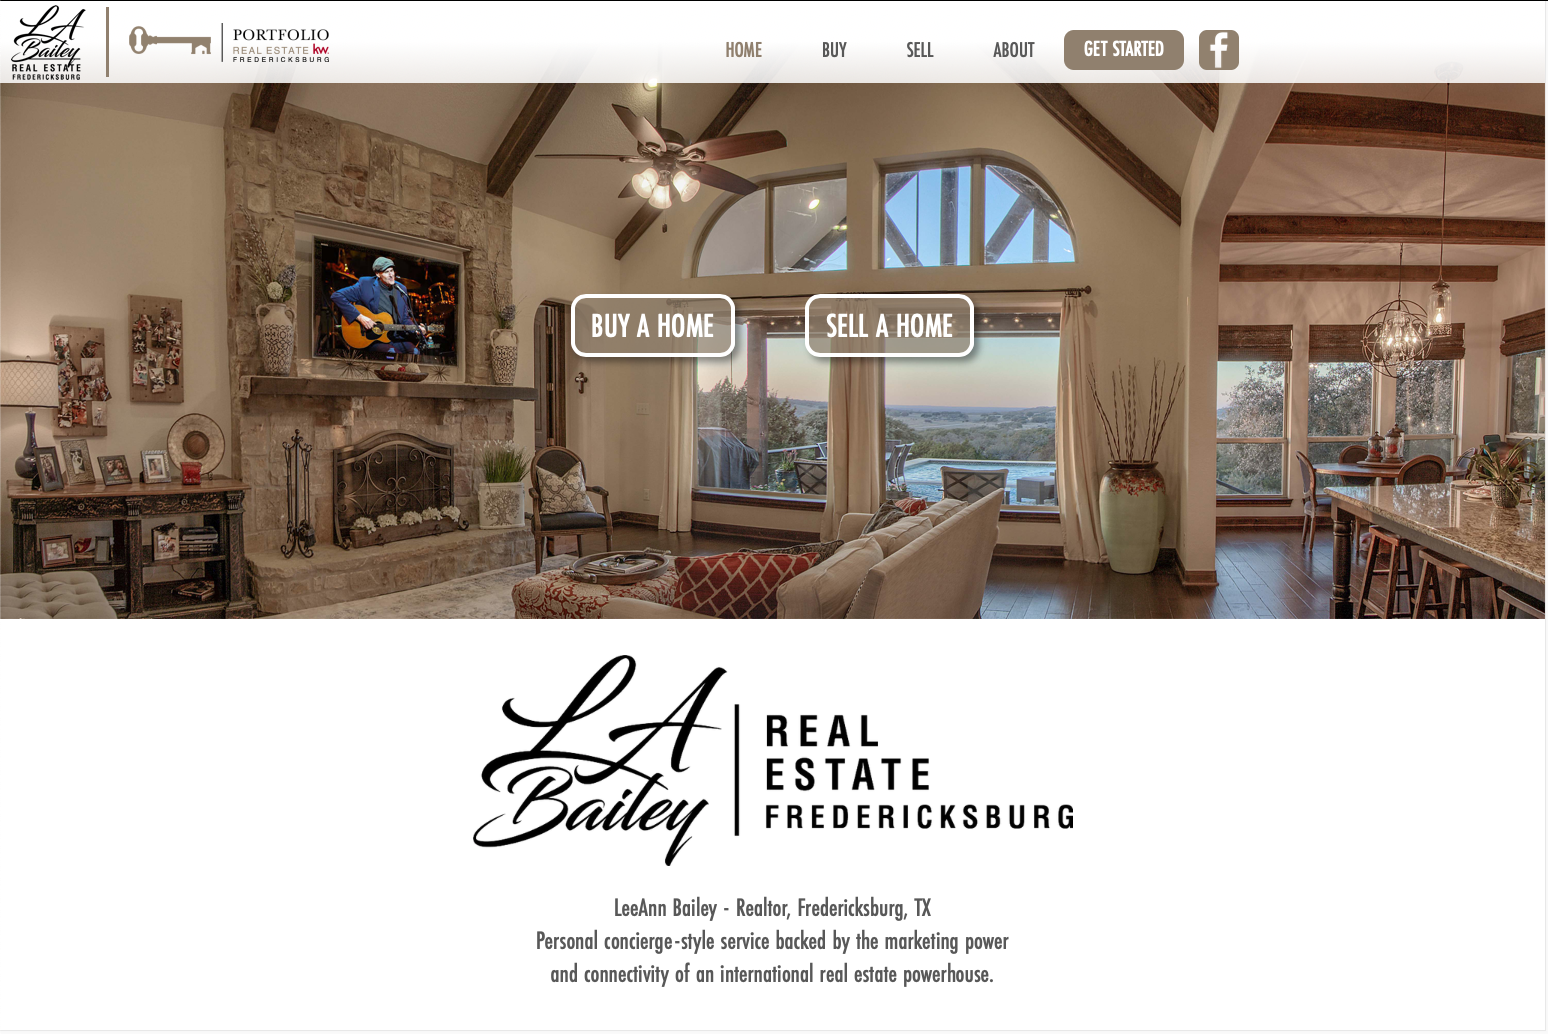 LA Bailey Real Estate